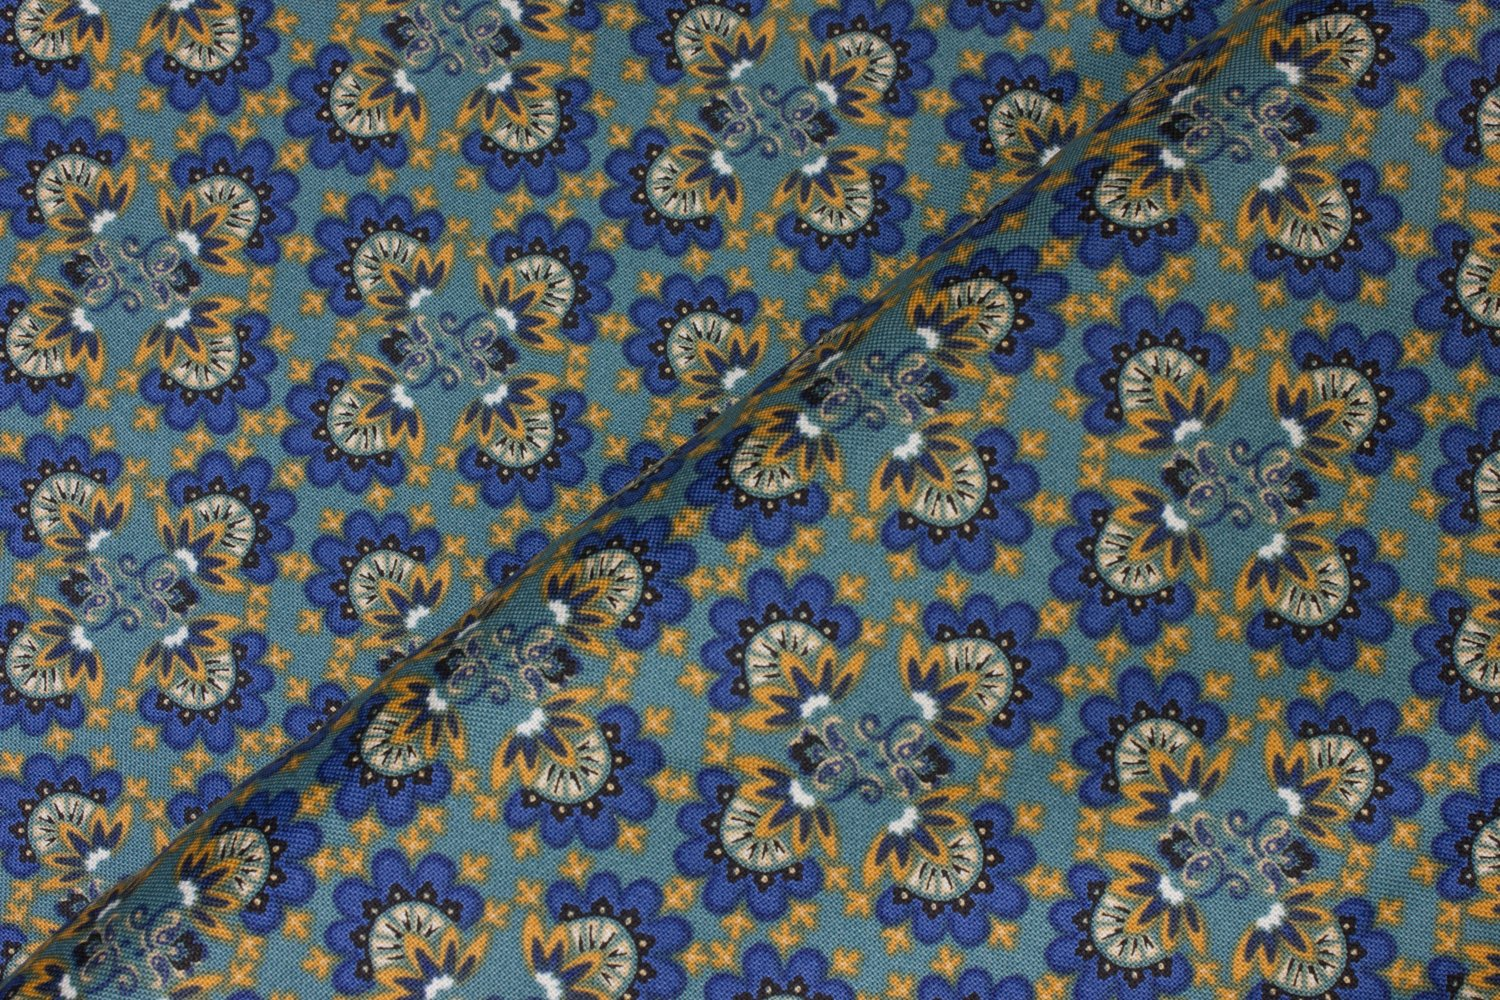 Blue and Golden Yellow Floral Design on Teal:  Ingrid -  Imperial Elegance by Connecting Threads